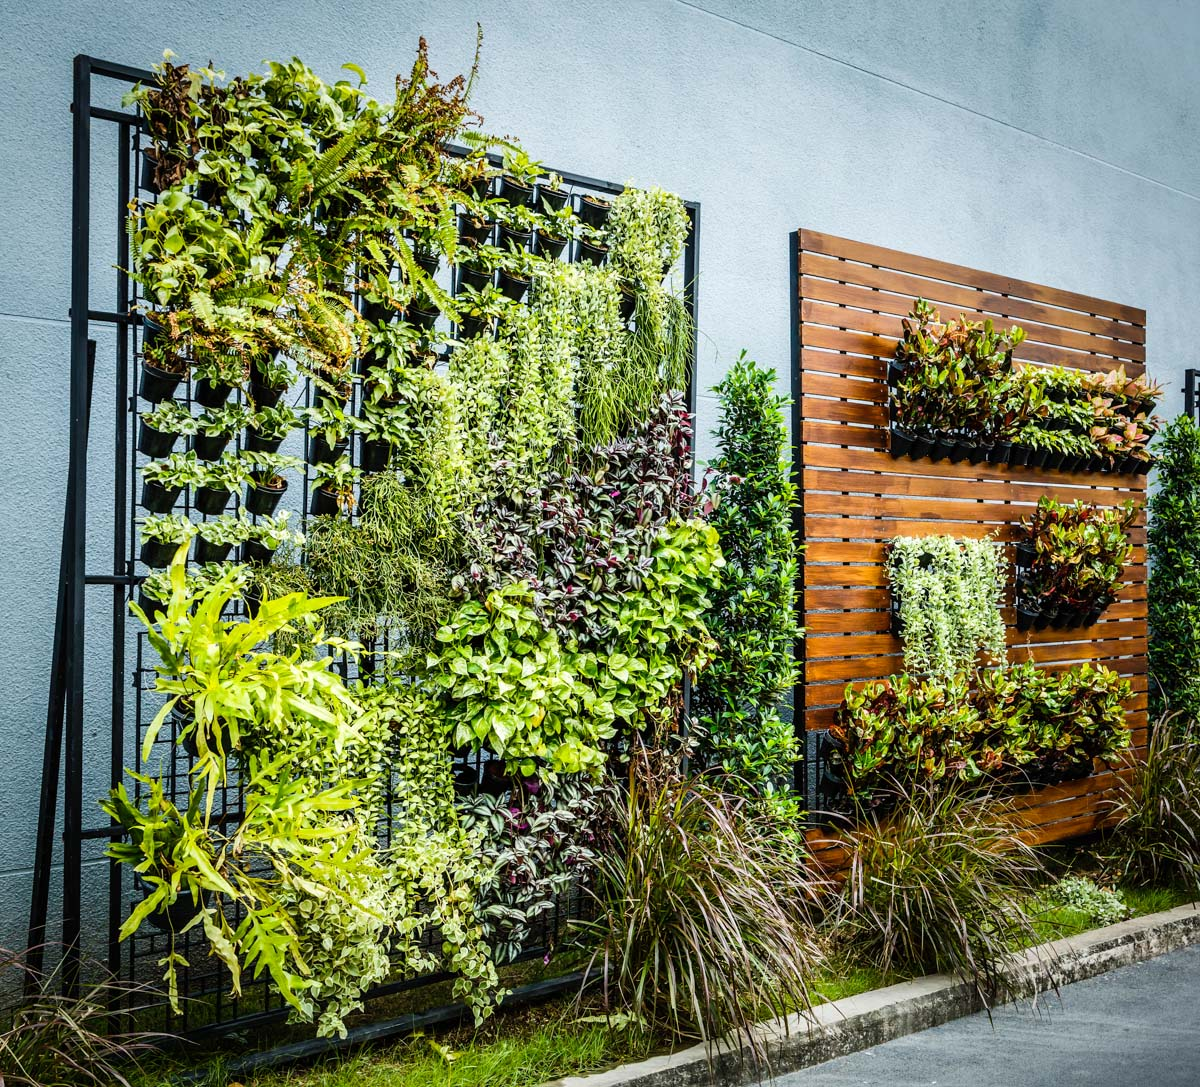 Vertikal Gardinen Vertical Gardens Are The Key To Self Sufficiency In The City